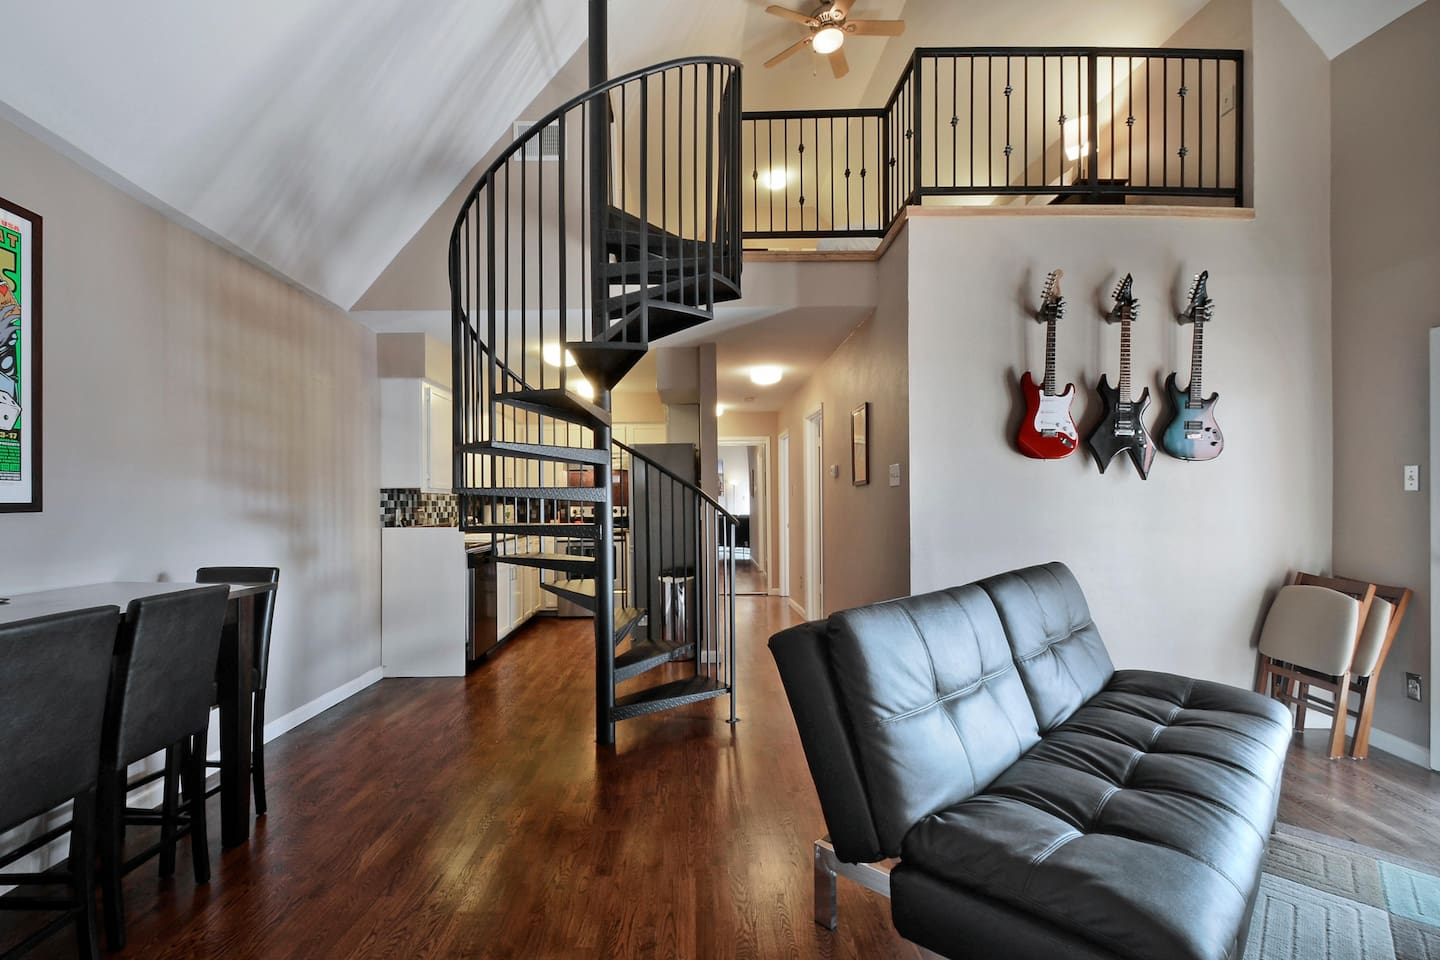 We have a wonderful condo with a luxurious loft.